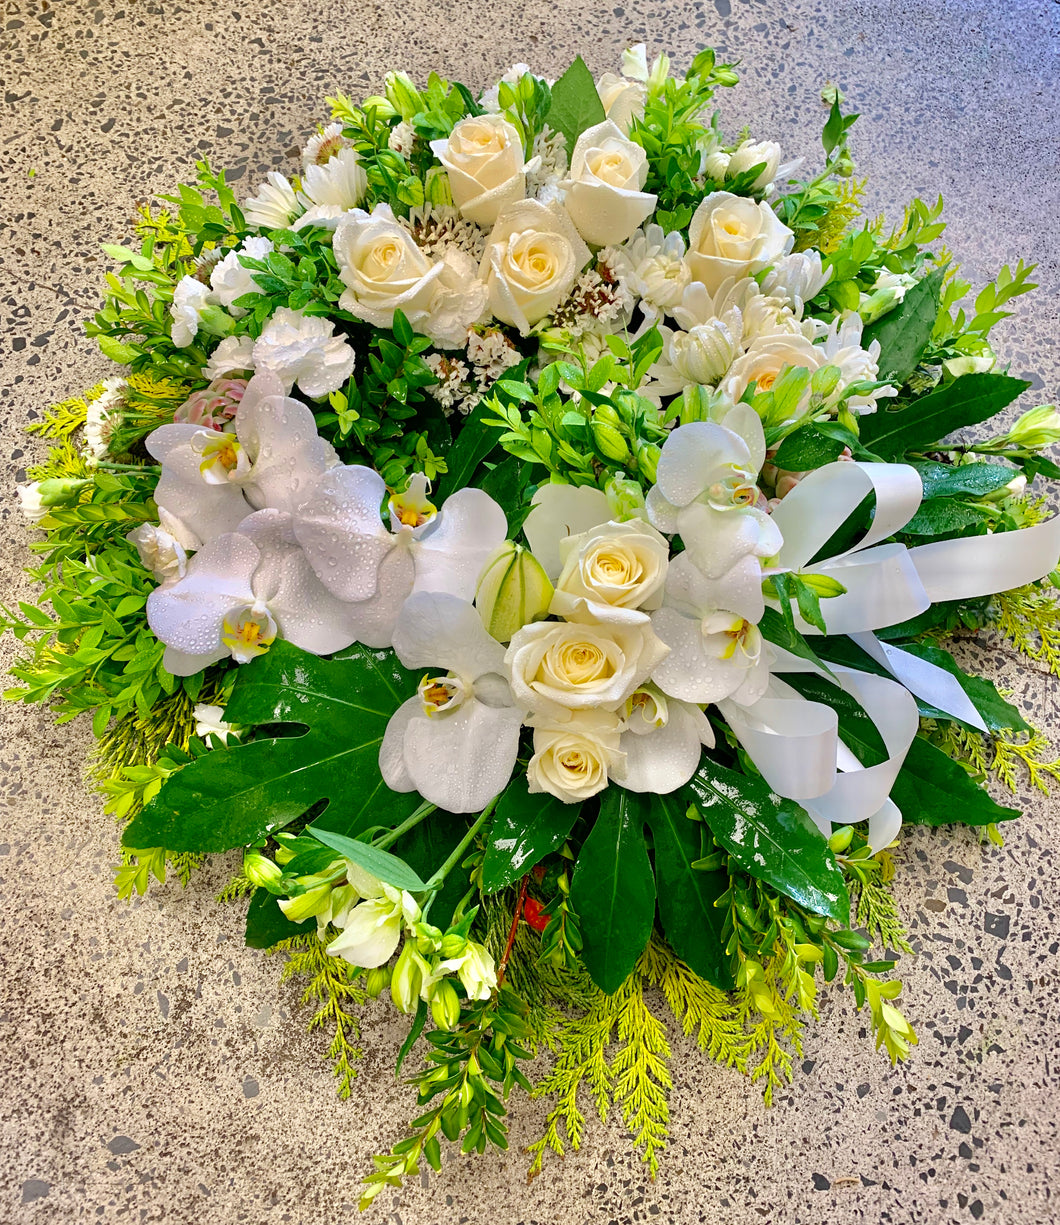 White Fresh Floral Wreath with Roses